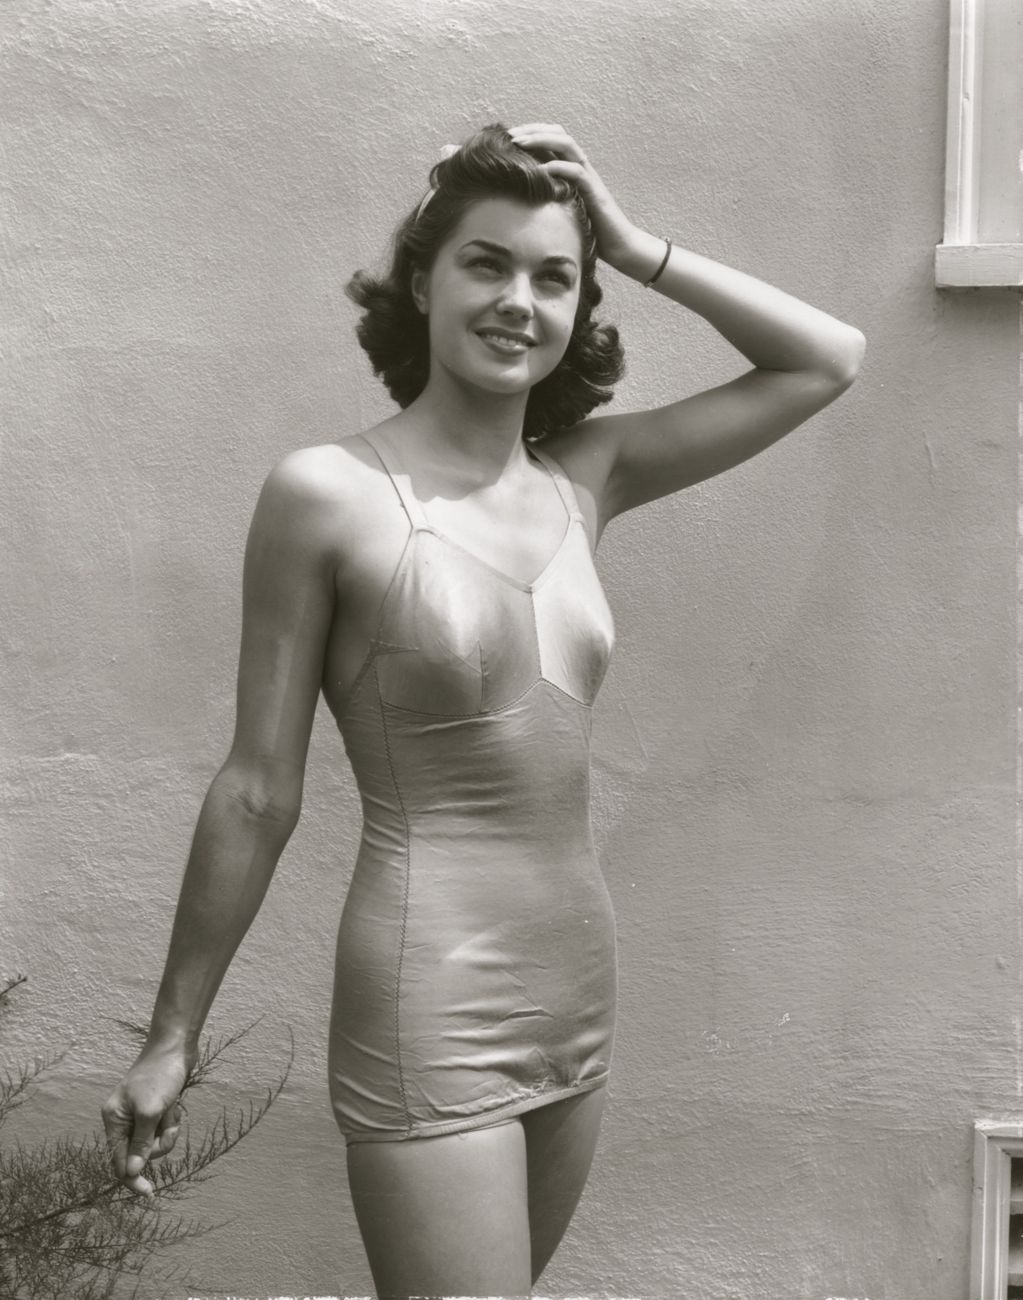 ester williams at 18